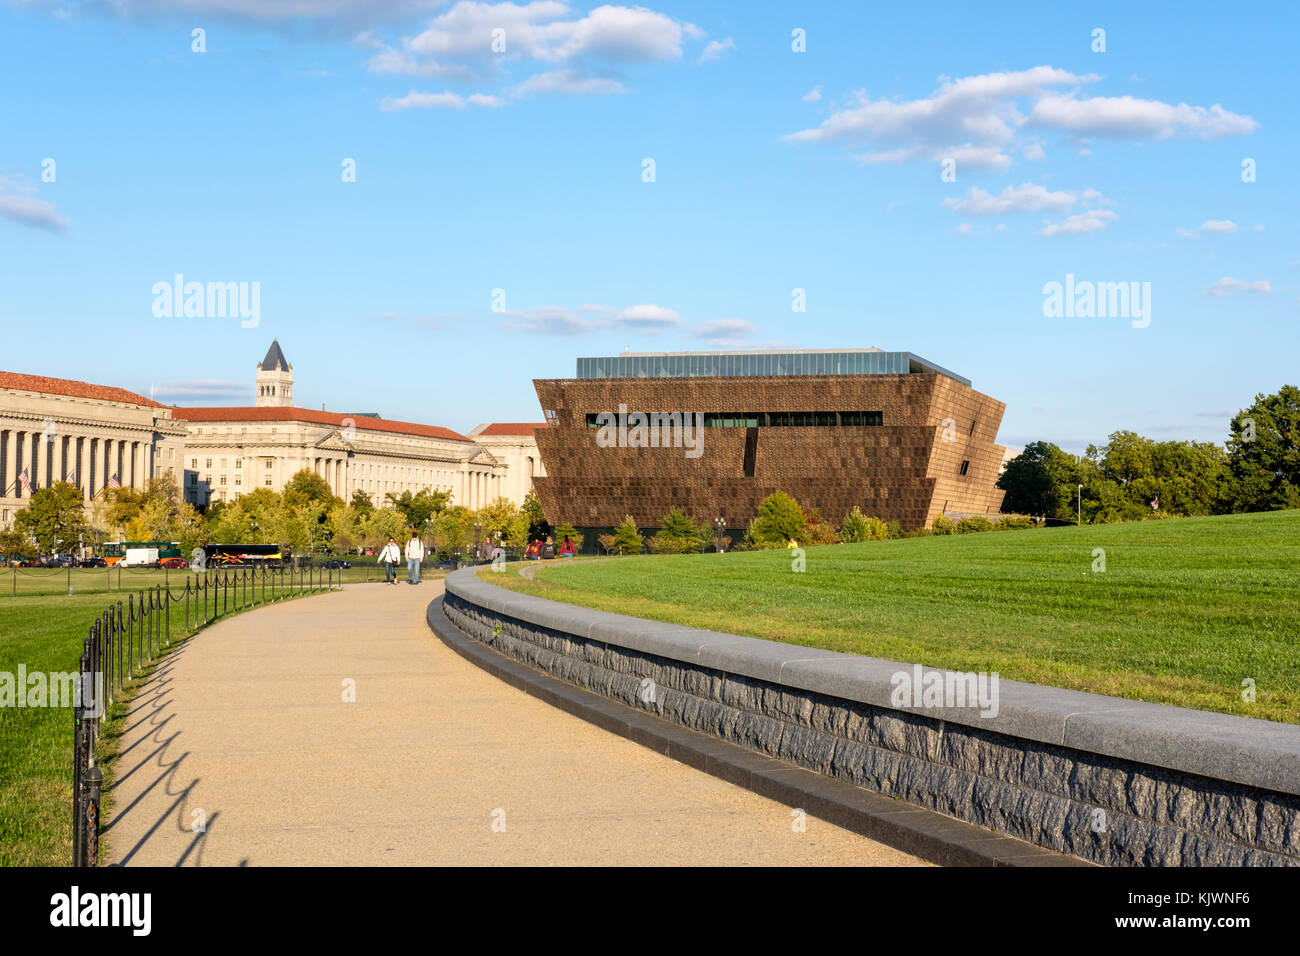 Smithsonian National Museum of African American History and Culture, Washington, D.C., USA. - Stock Image